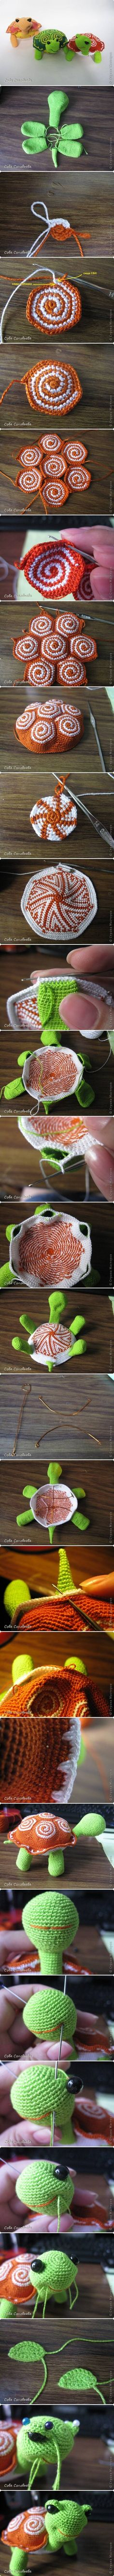 DIY Little Crochet Turtle